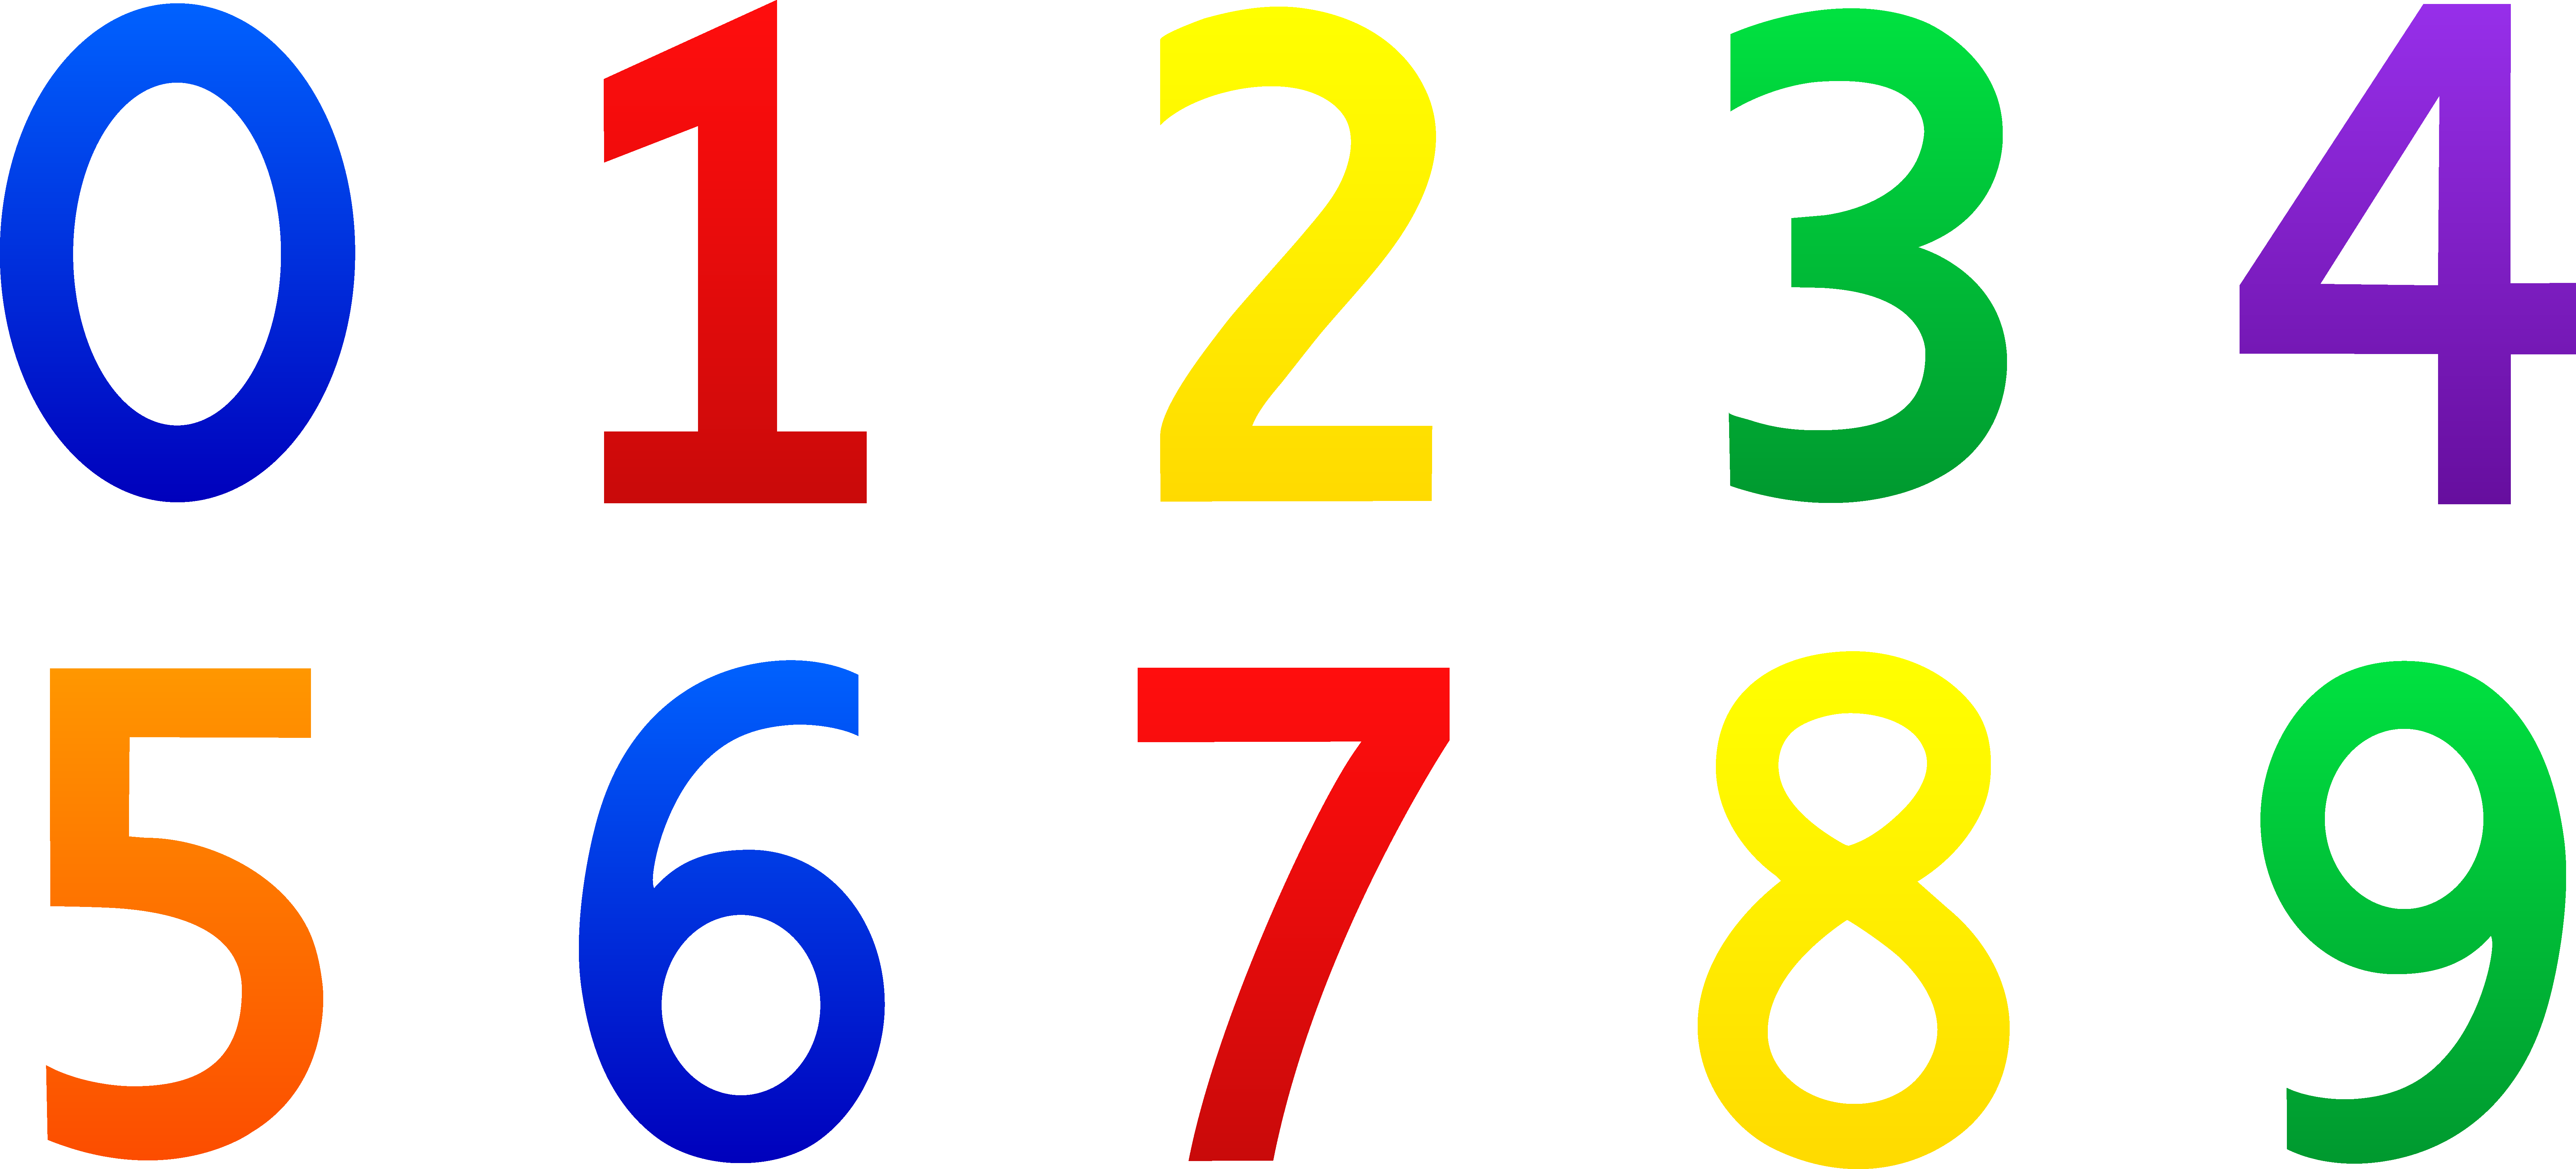 Free cliparts numbers separate. 3 clipart number 0 svg transparent download